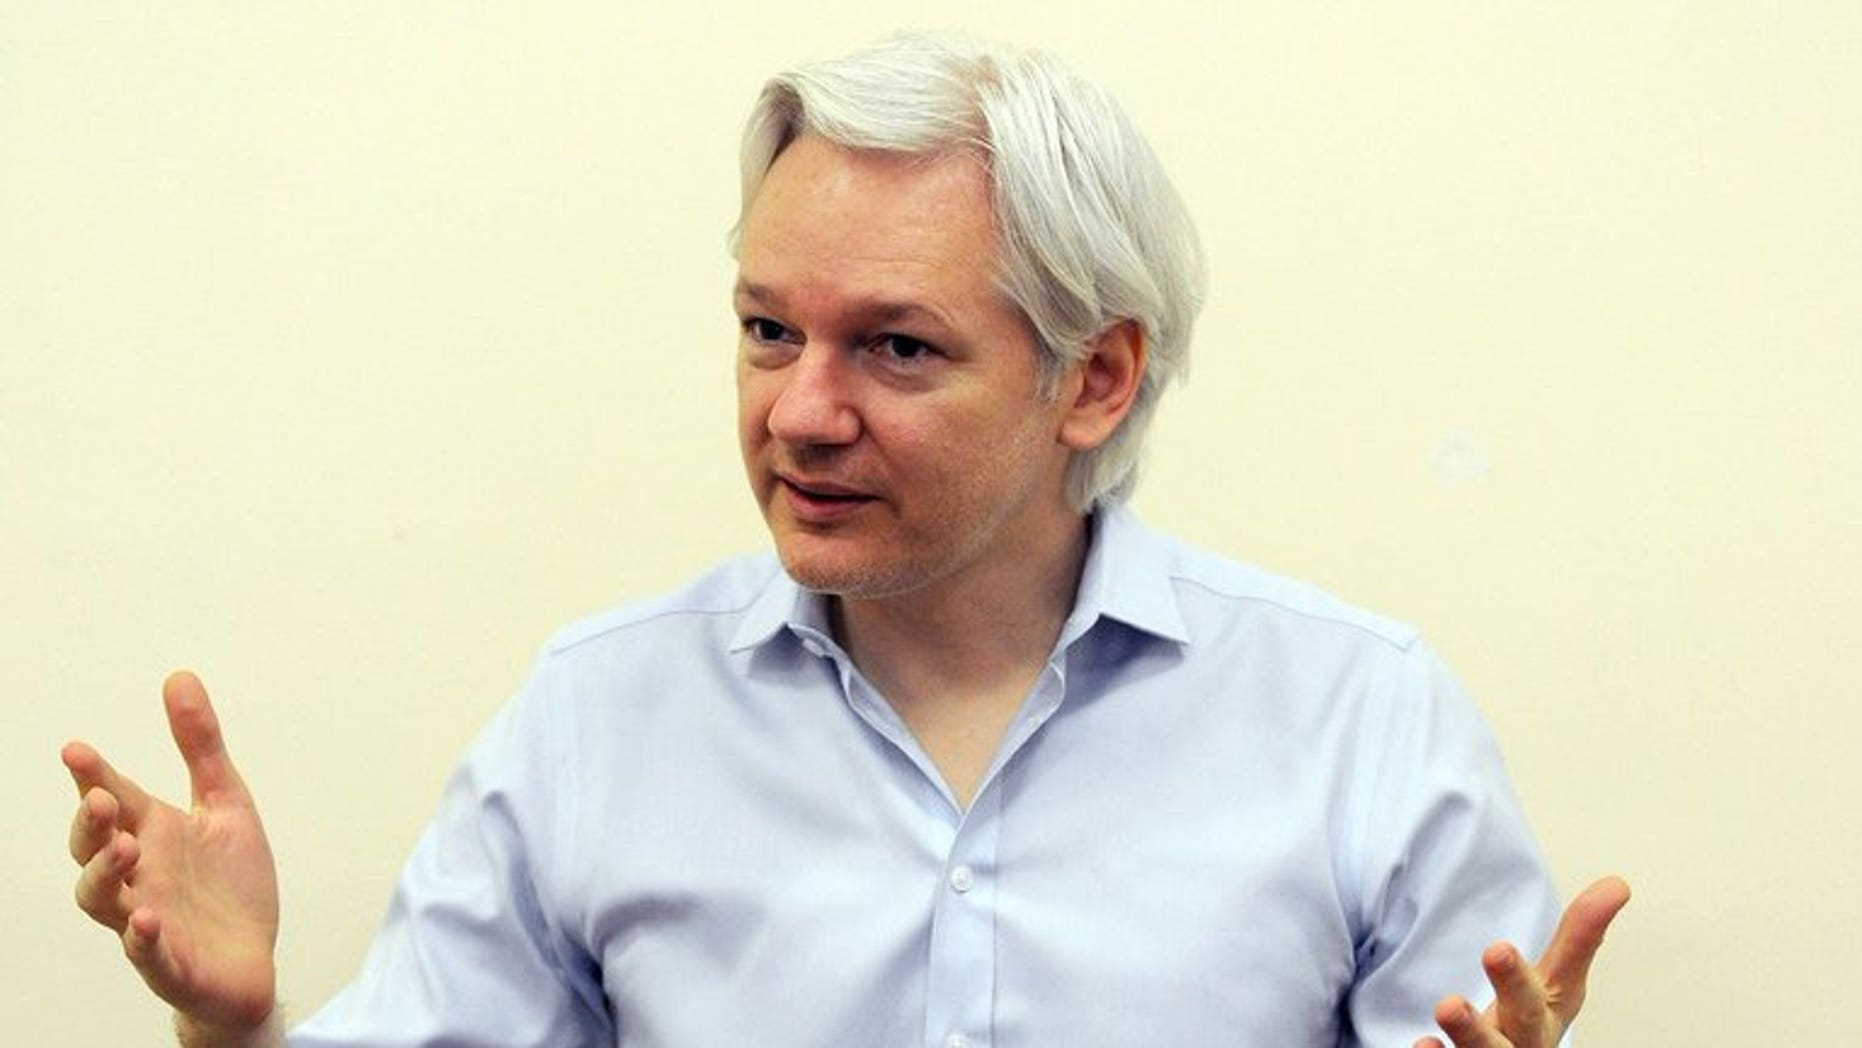 """Wikileaks founder Julian Assange speaks to the media inside the Ecuadorian Embassy in London on June 14, 2013. Assange Thursday officially launched his political party to contest Australian elections this year, saying a victory for this candidates would be akin to planting the country's """"best investigative journalists"""" in the Senate."""